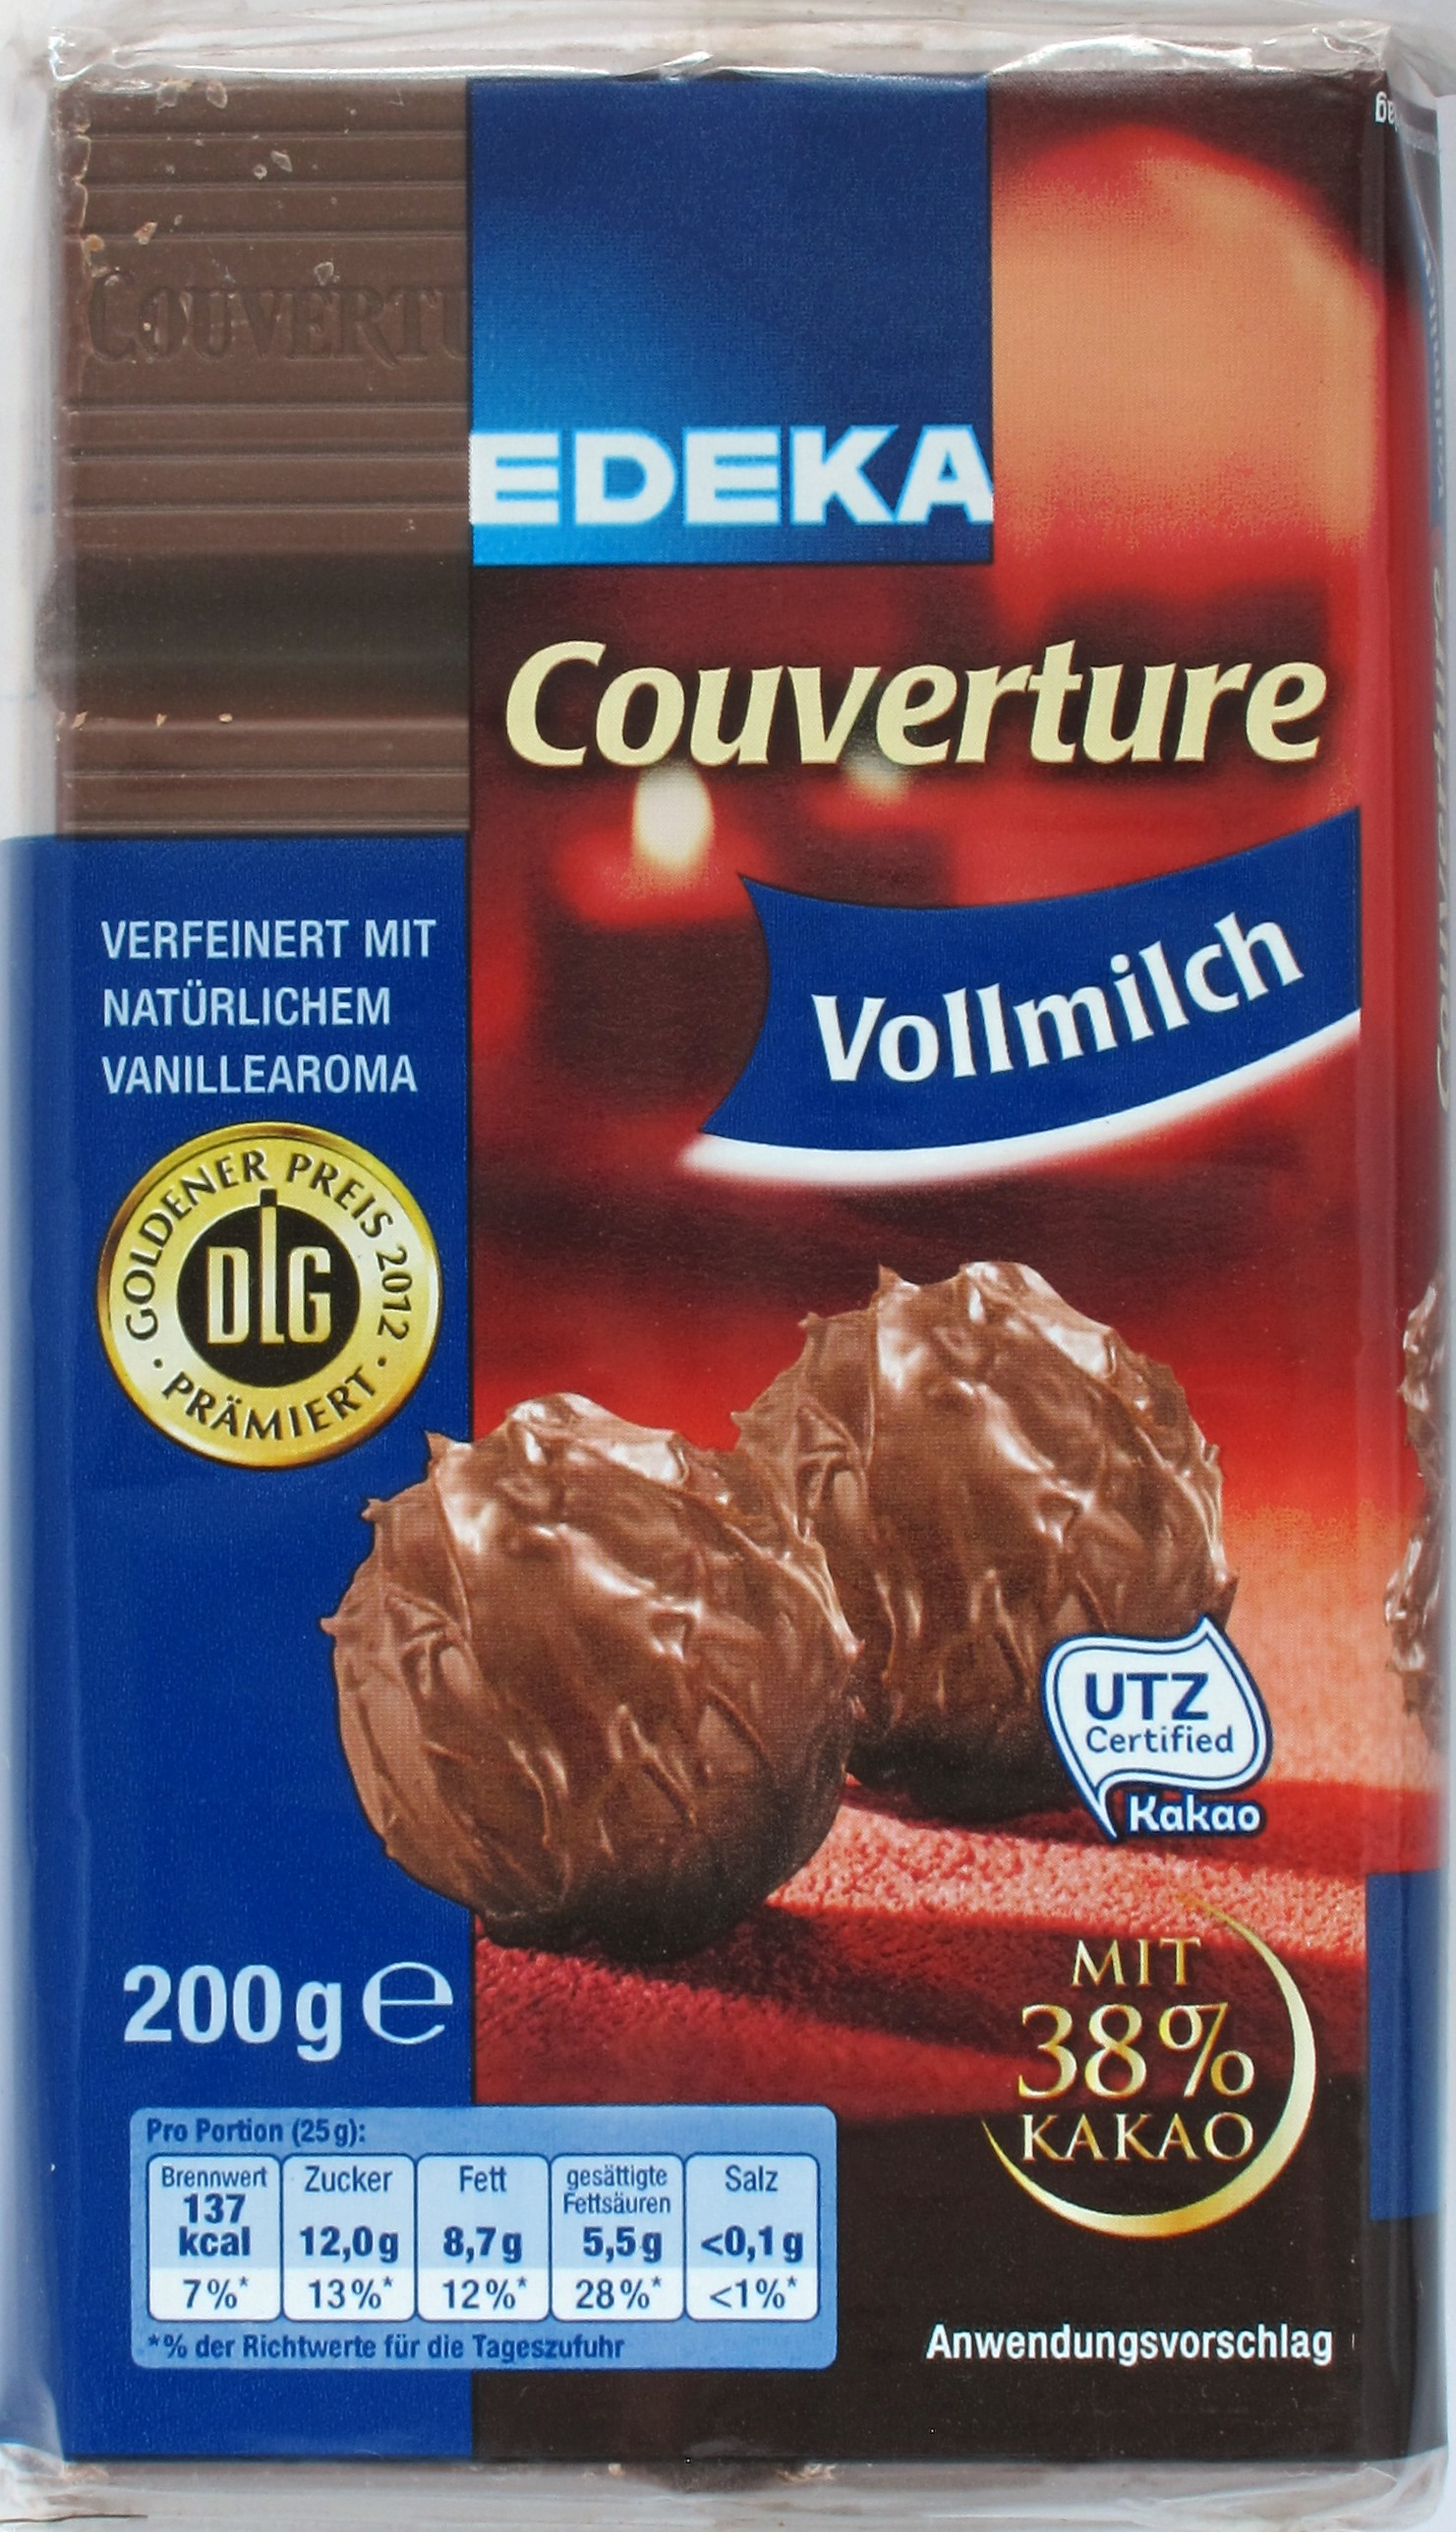 EDEKA-Vollmilchkuvertüre